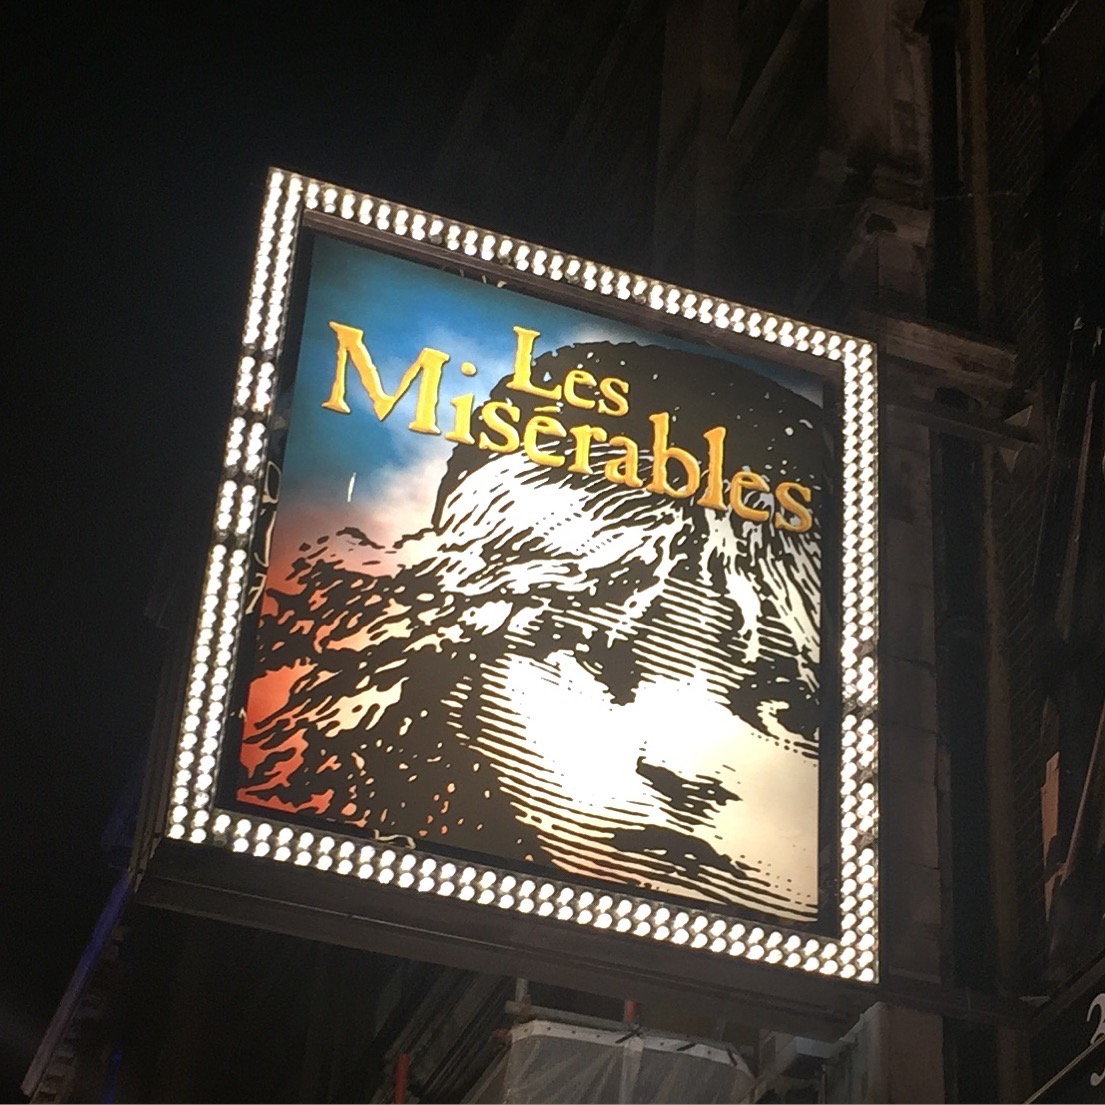 Tuesday Ticket Tricks: How to buy cheaper tickets for Les Miserables